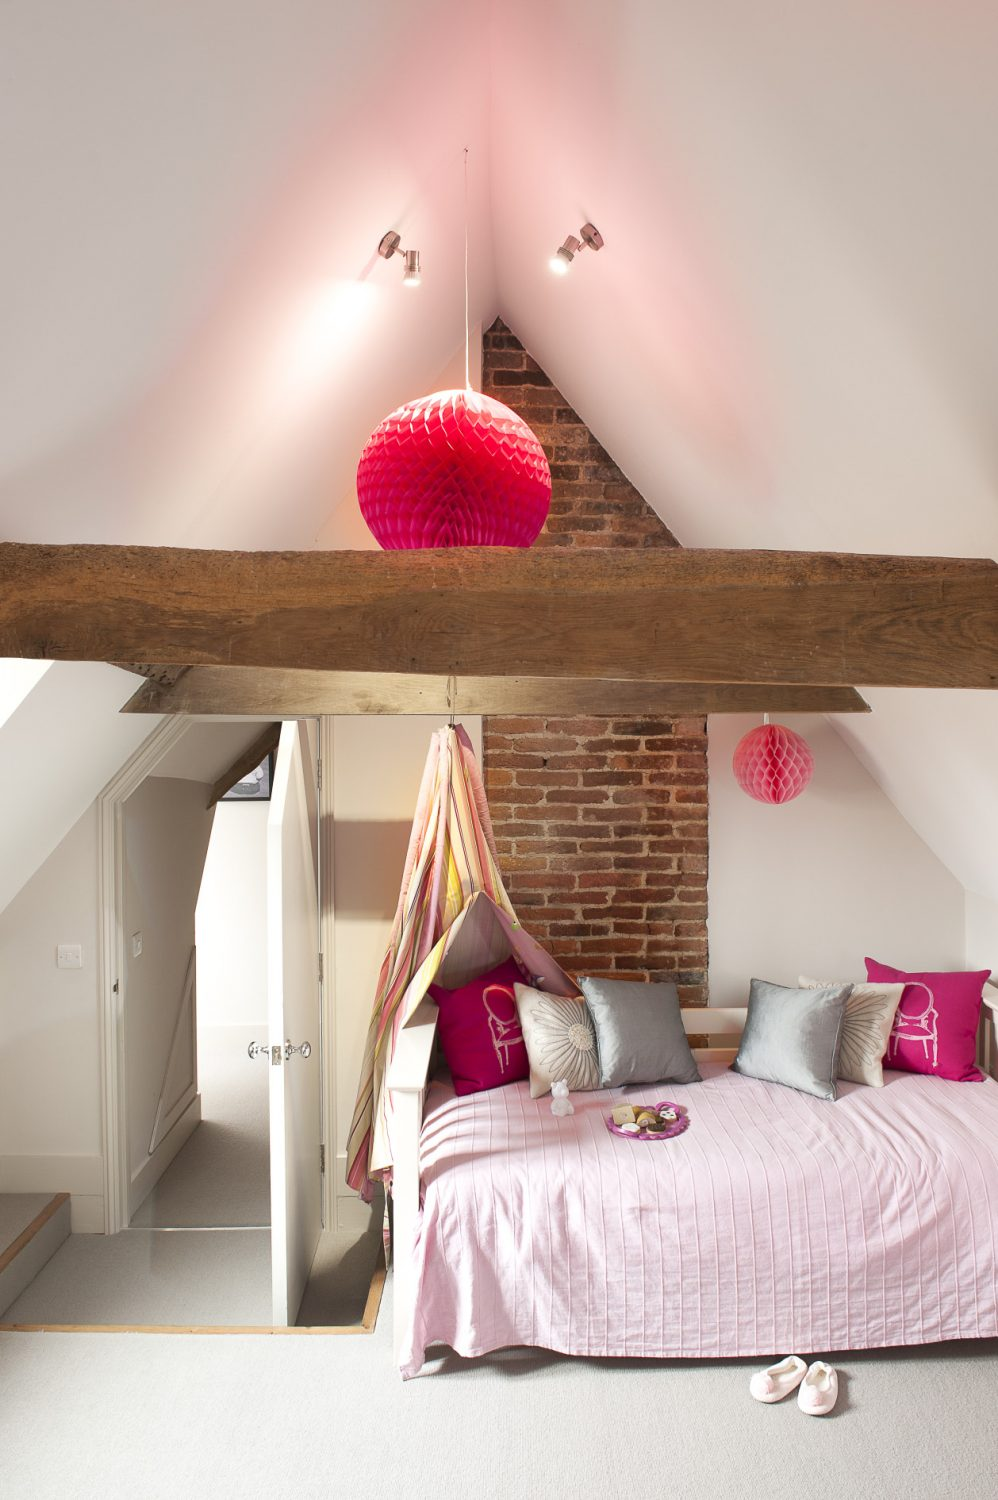 """The attic, once converted, was the perfect space for three children's bedrooms. """"We renovated the first two floors of the house first,"""" says Perrine, """"and then had to wait while we got planning permission for our plans for the top floor."""" Thankfully, approval was granted, and the children now love their cosy rooms"""